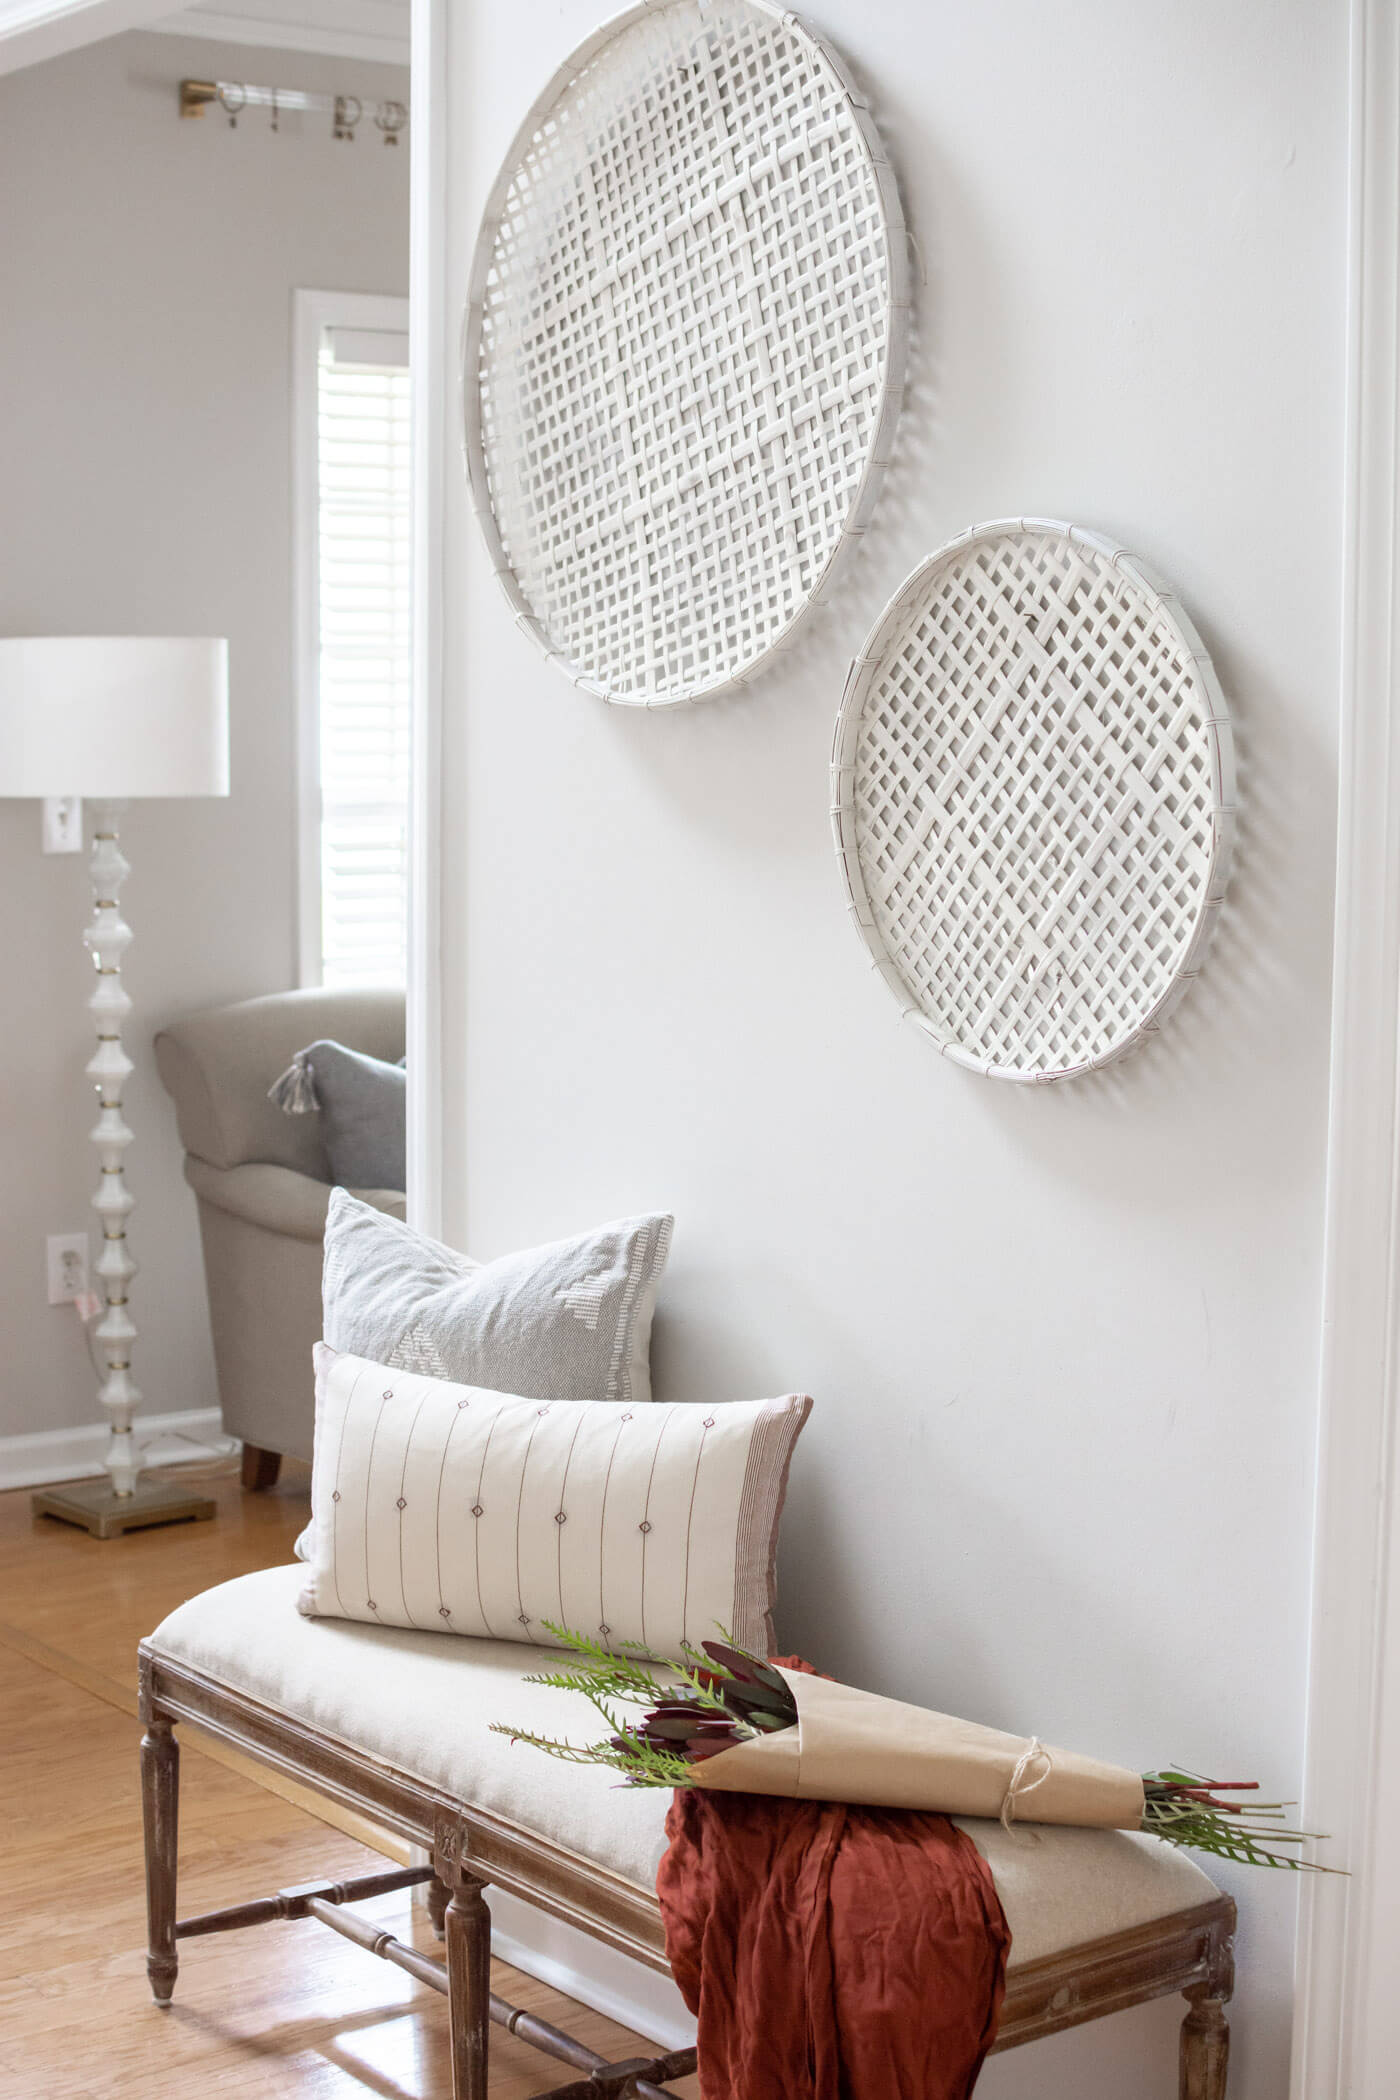 Painted Wall Baskets - thehomeicreate.com